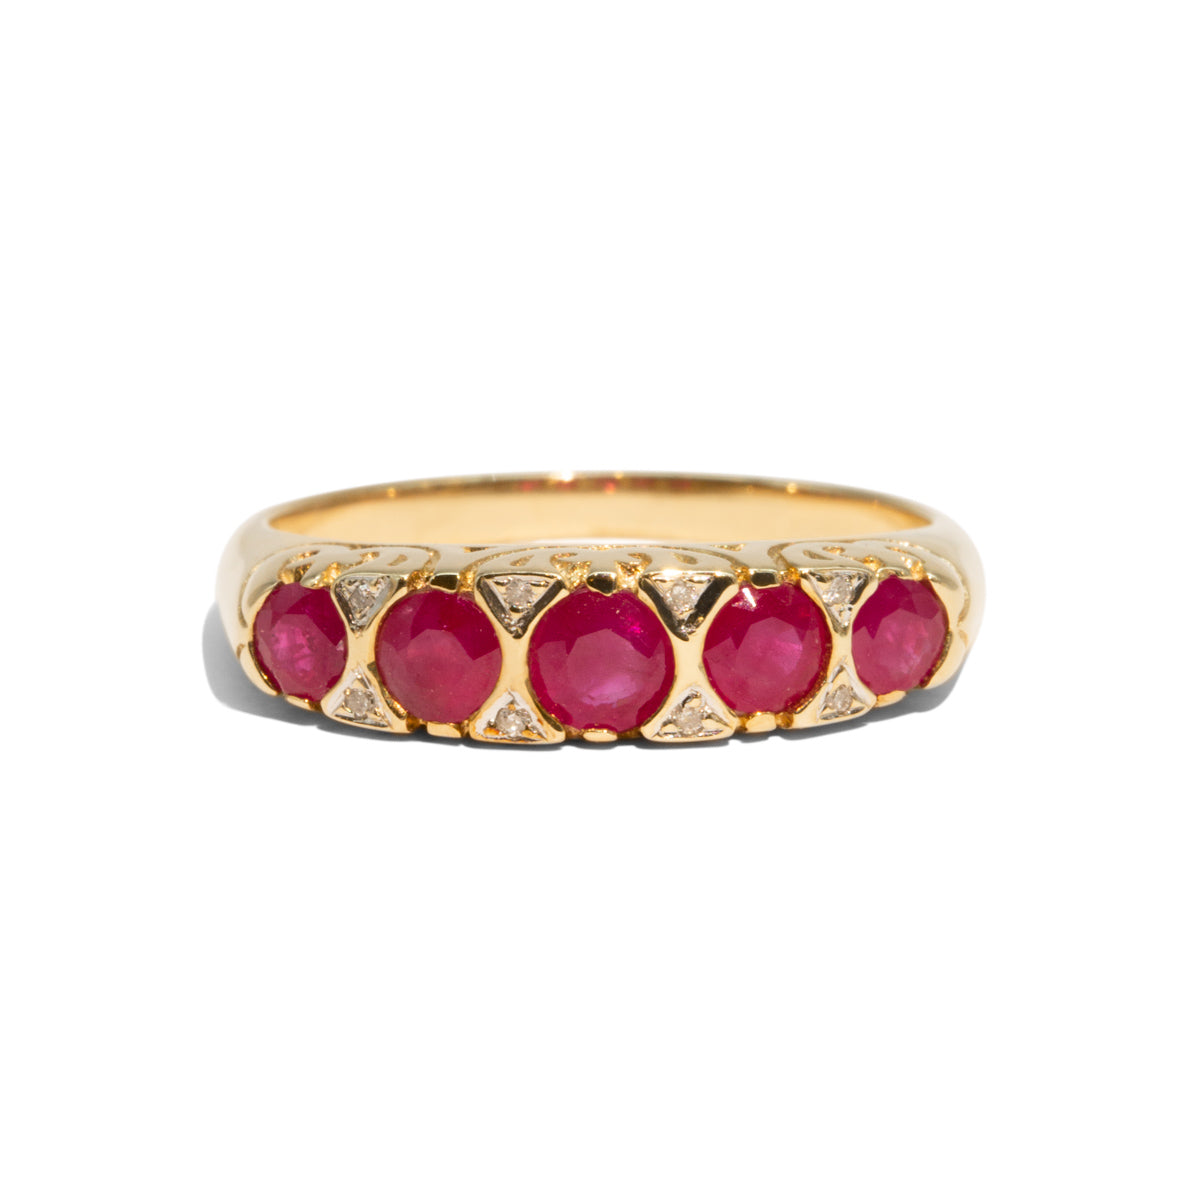 The Freya Vintage Ruby Ring